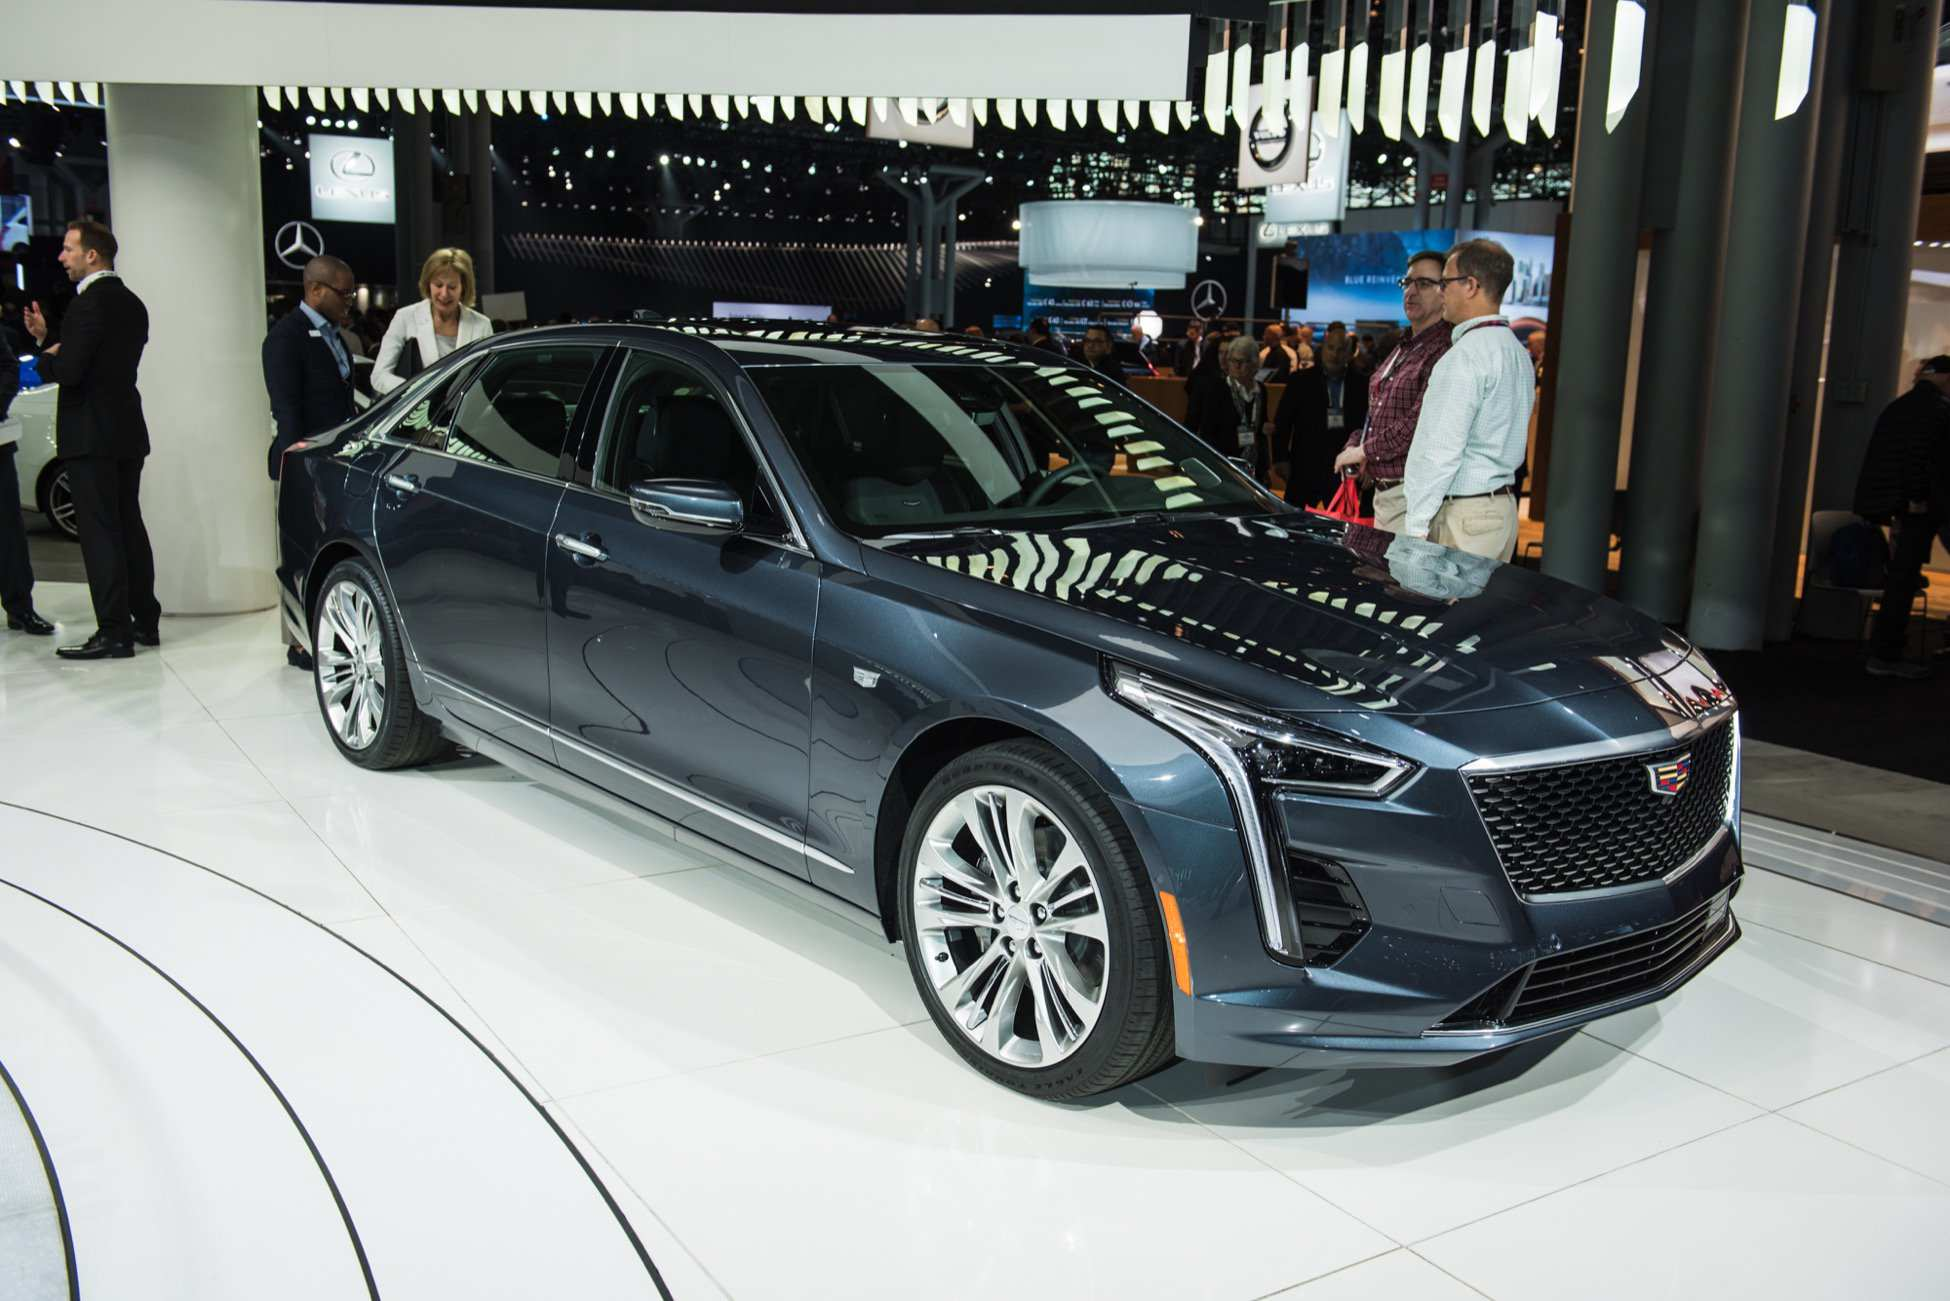 93 All New 2020 Cadillac Ct6 V8 First Drive